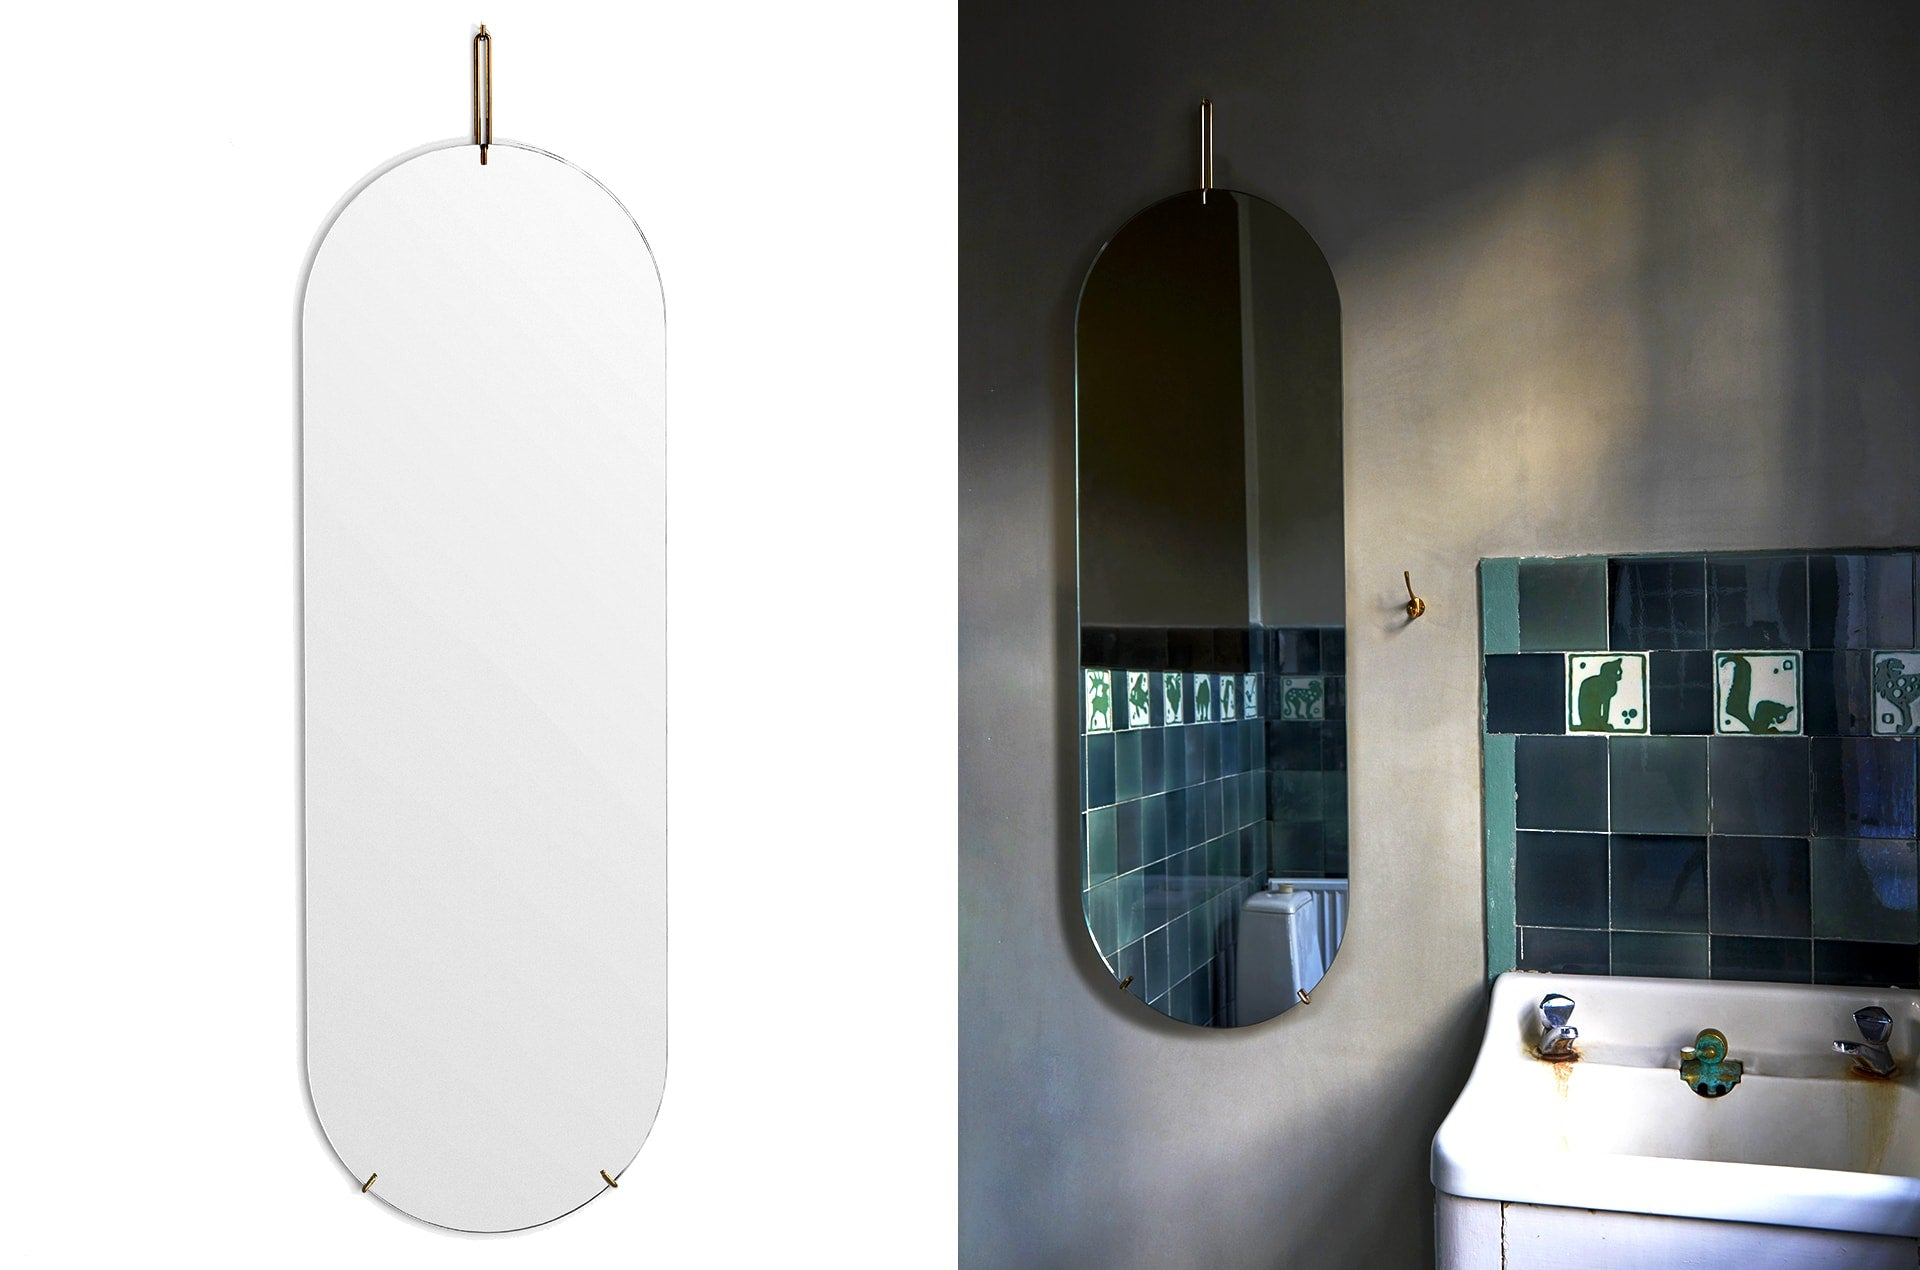 Grand miroir vertical cuivré 133cm WALL MIRROR TALL by Moebe-ambiance-PARIDEO Design durable